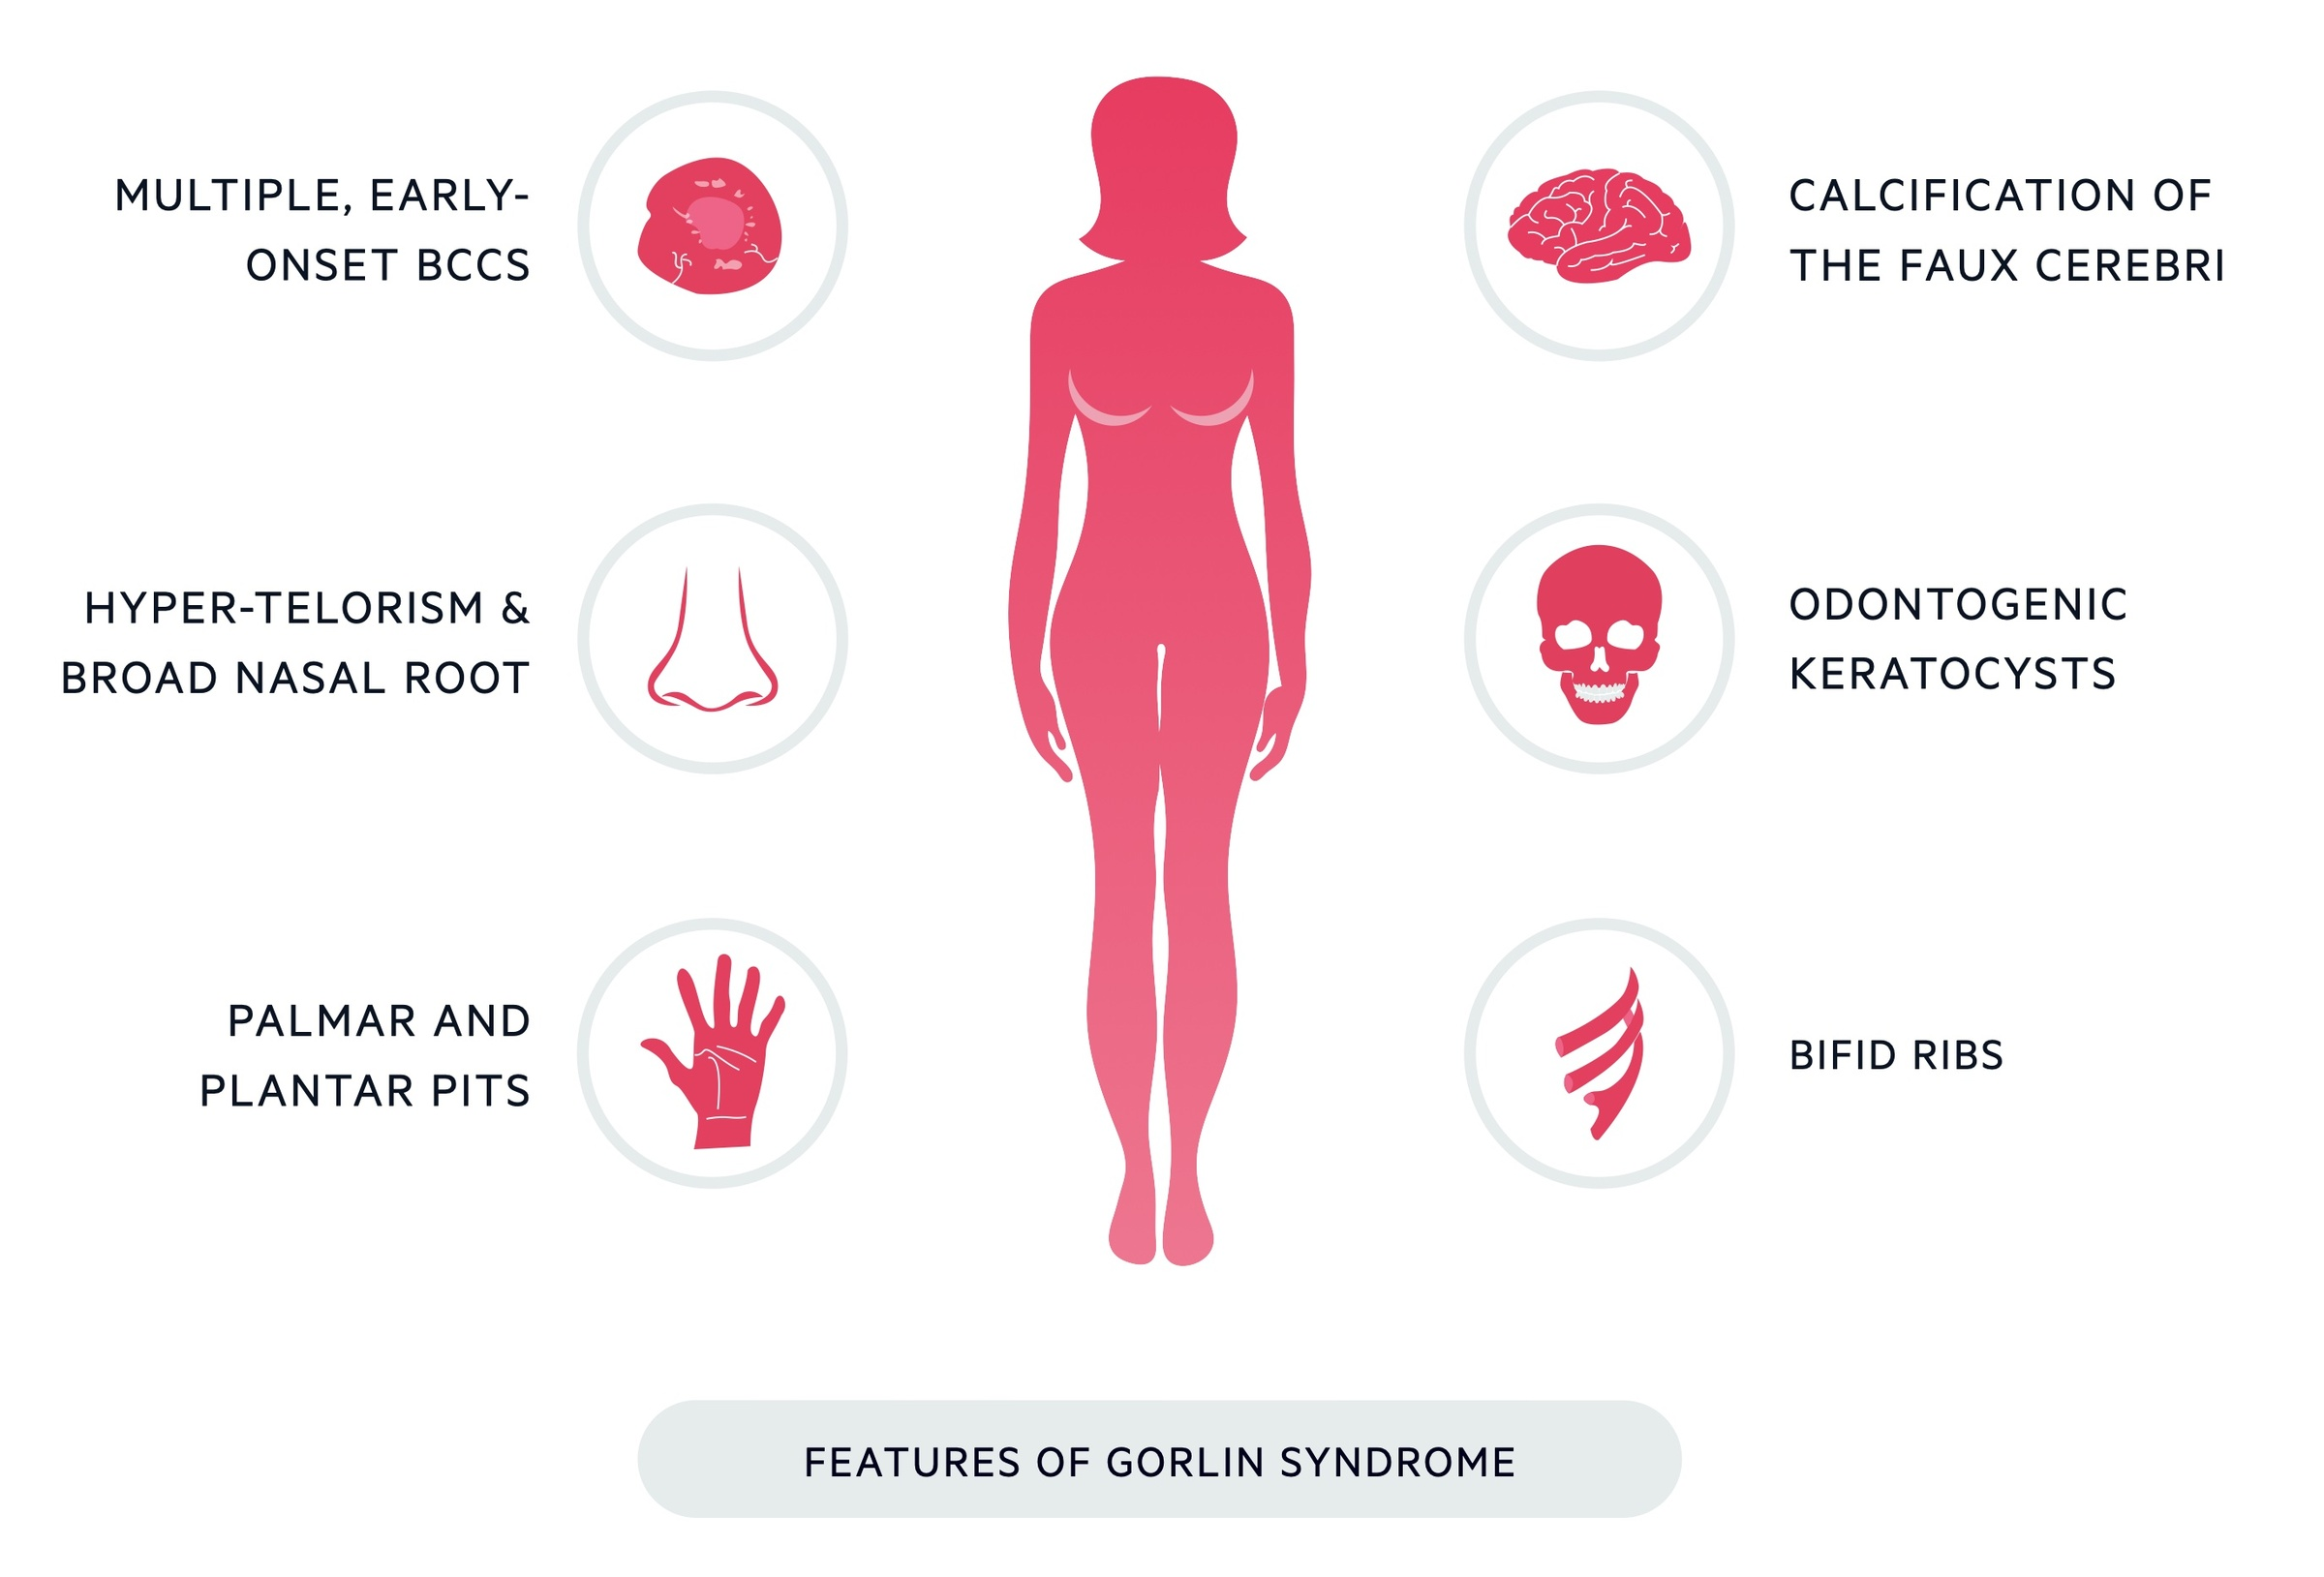 Features of Gorlin Syndrome